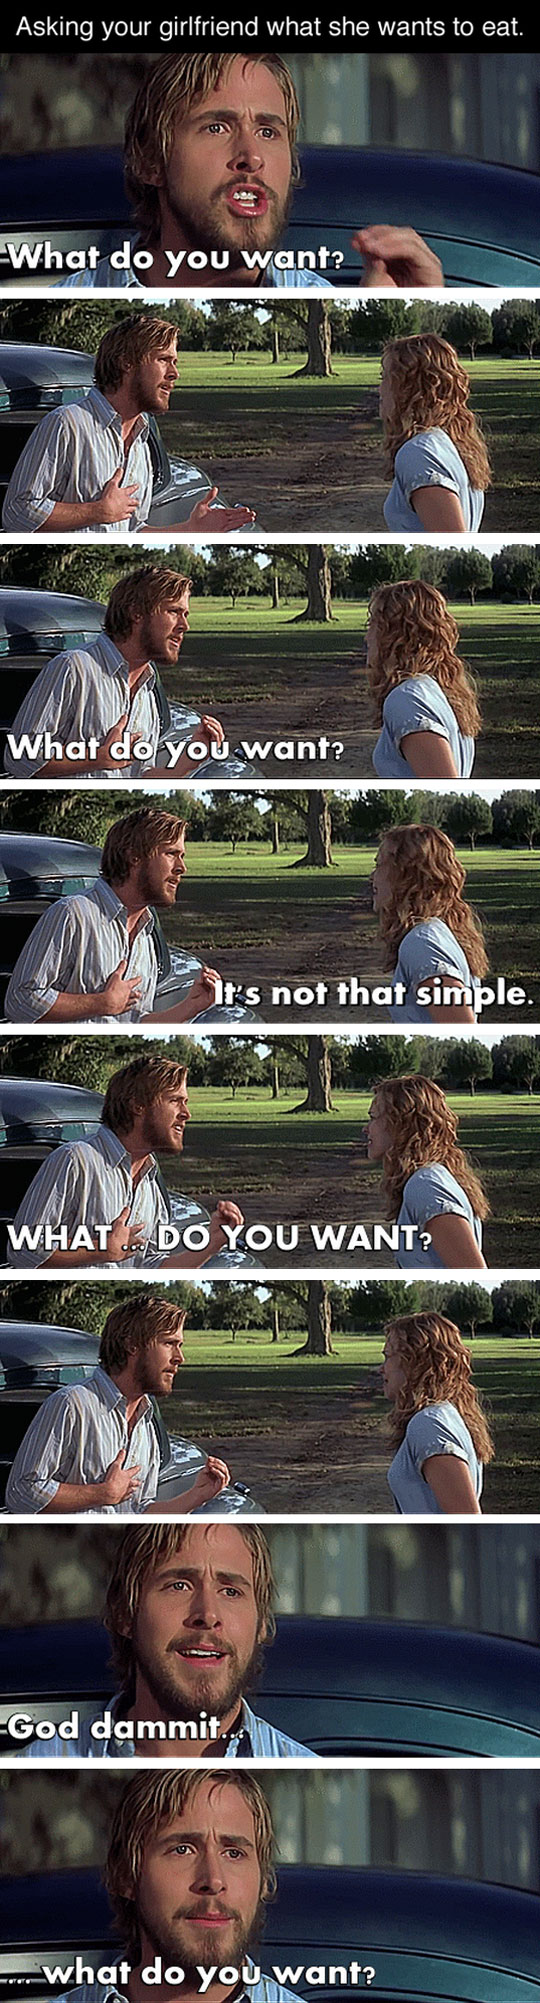 funny-picture-Ryan-Gosling-girlfriend-asking